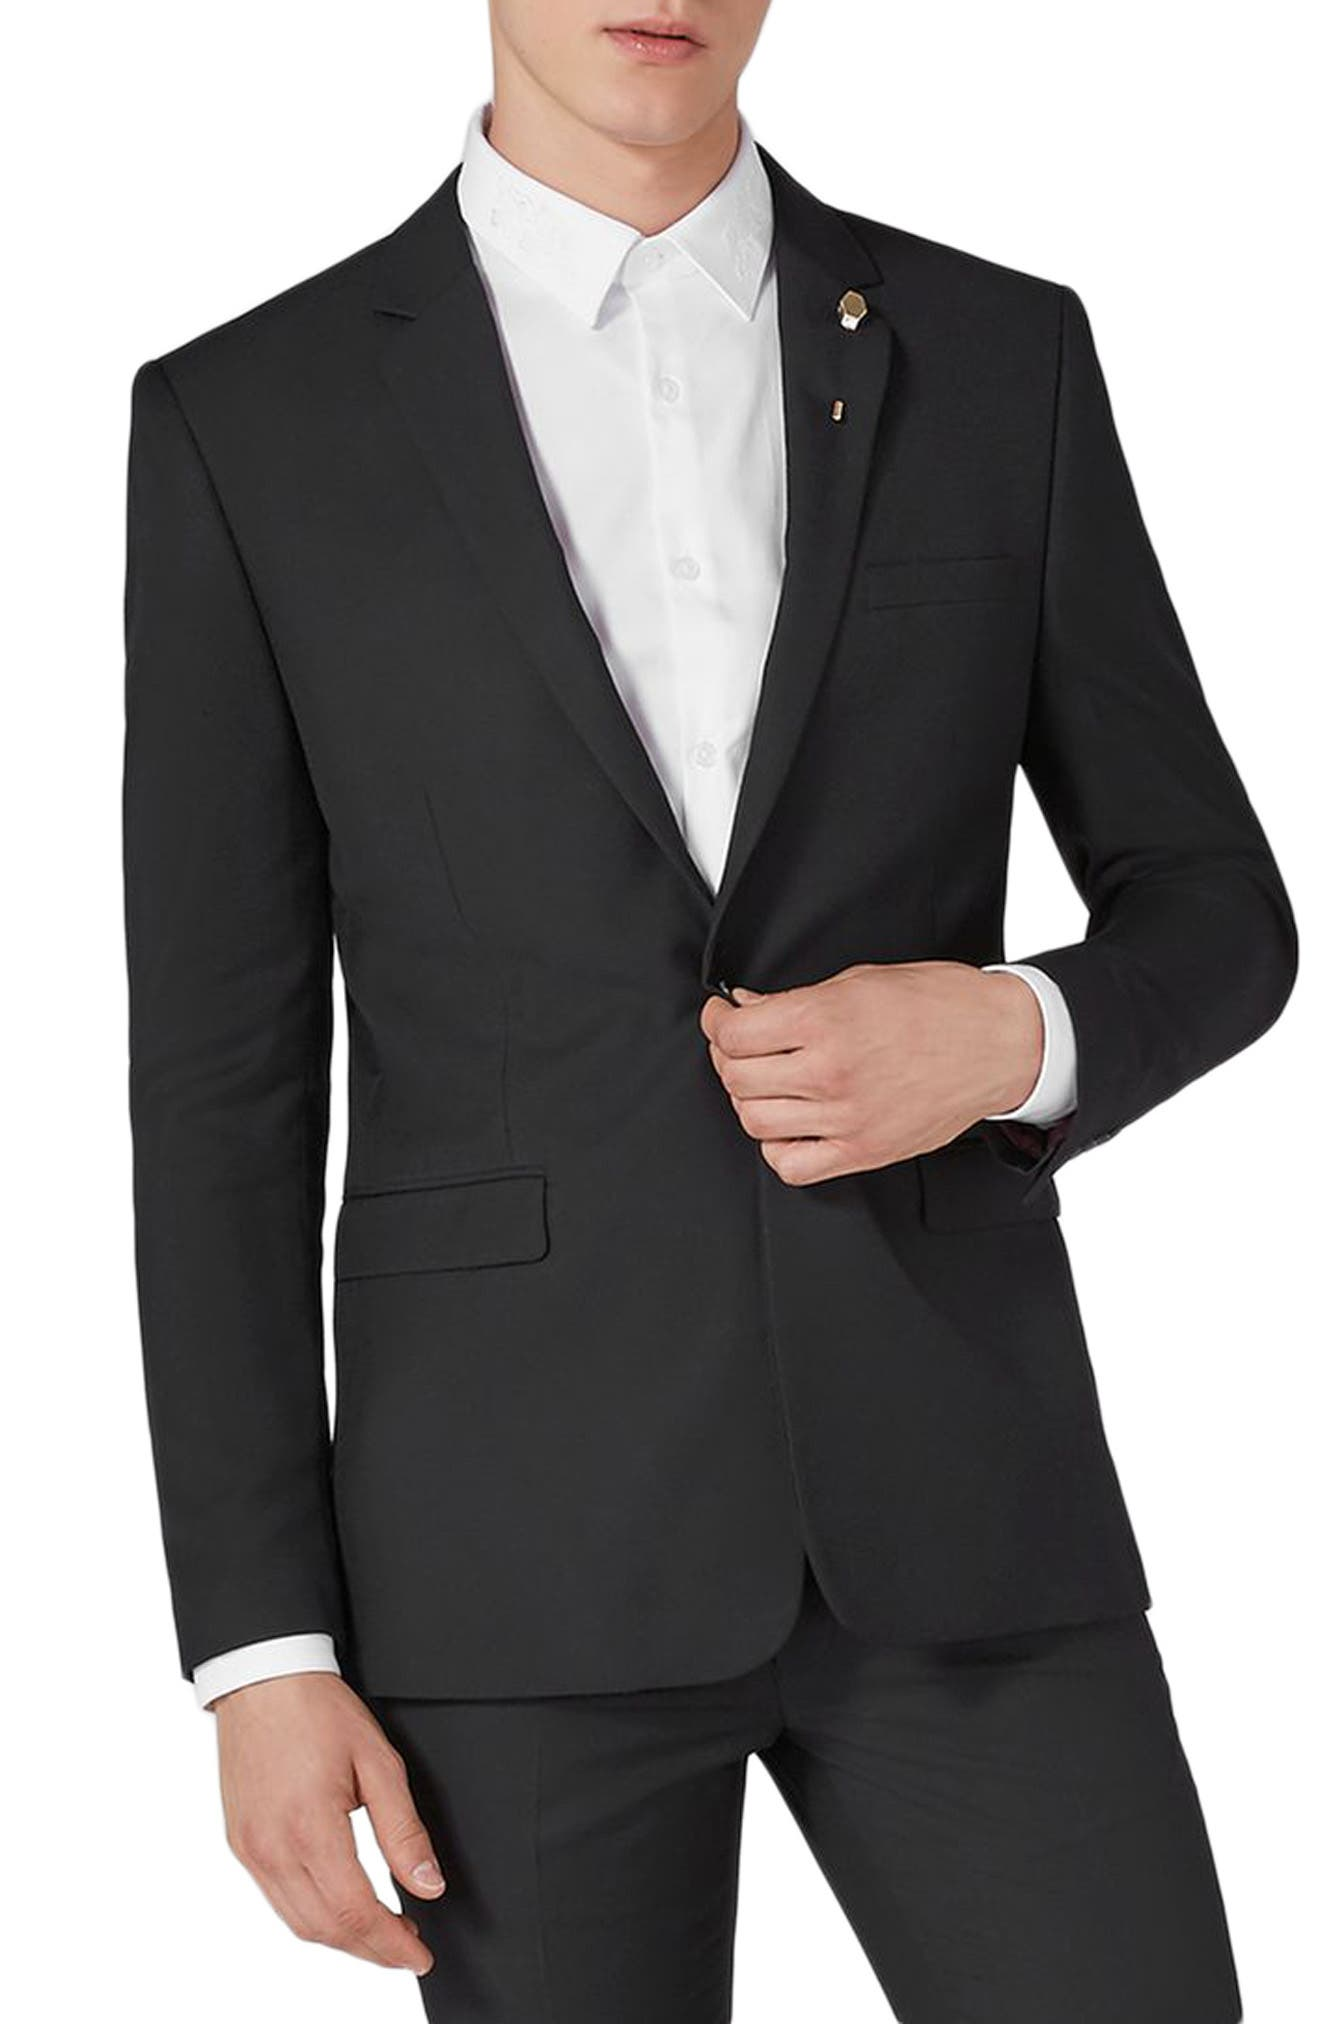 TOPMAN Skinny Fit One-Button Suit Jacket, Main, color, BLACK